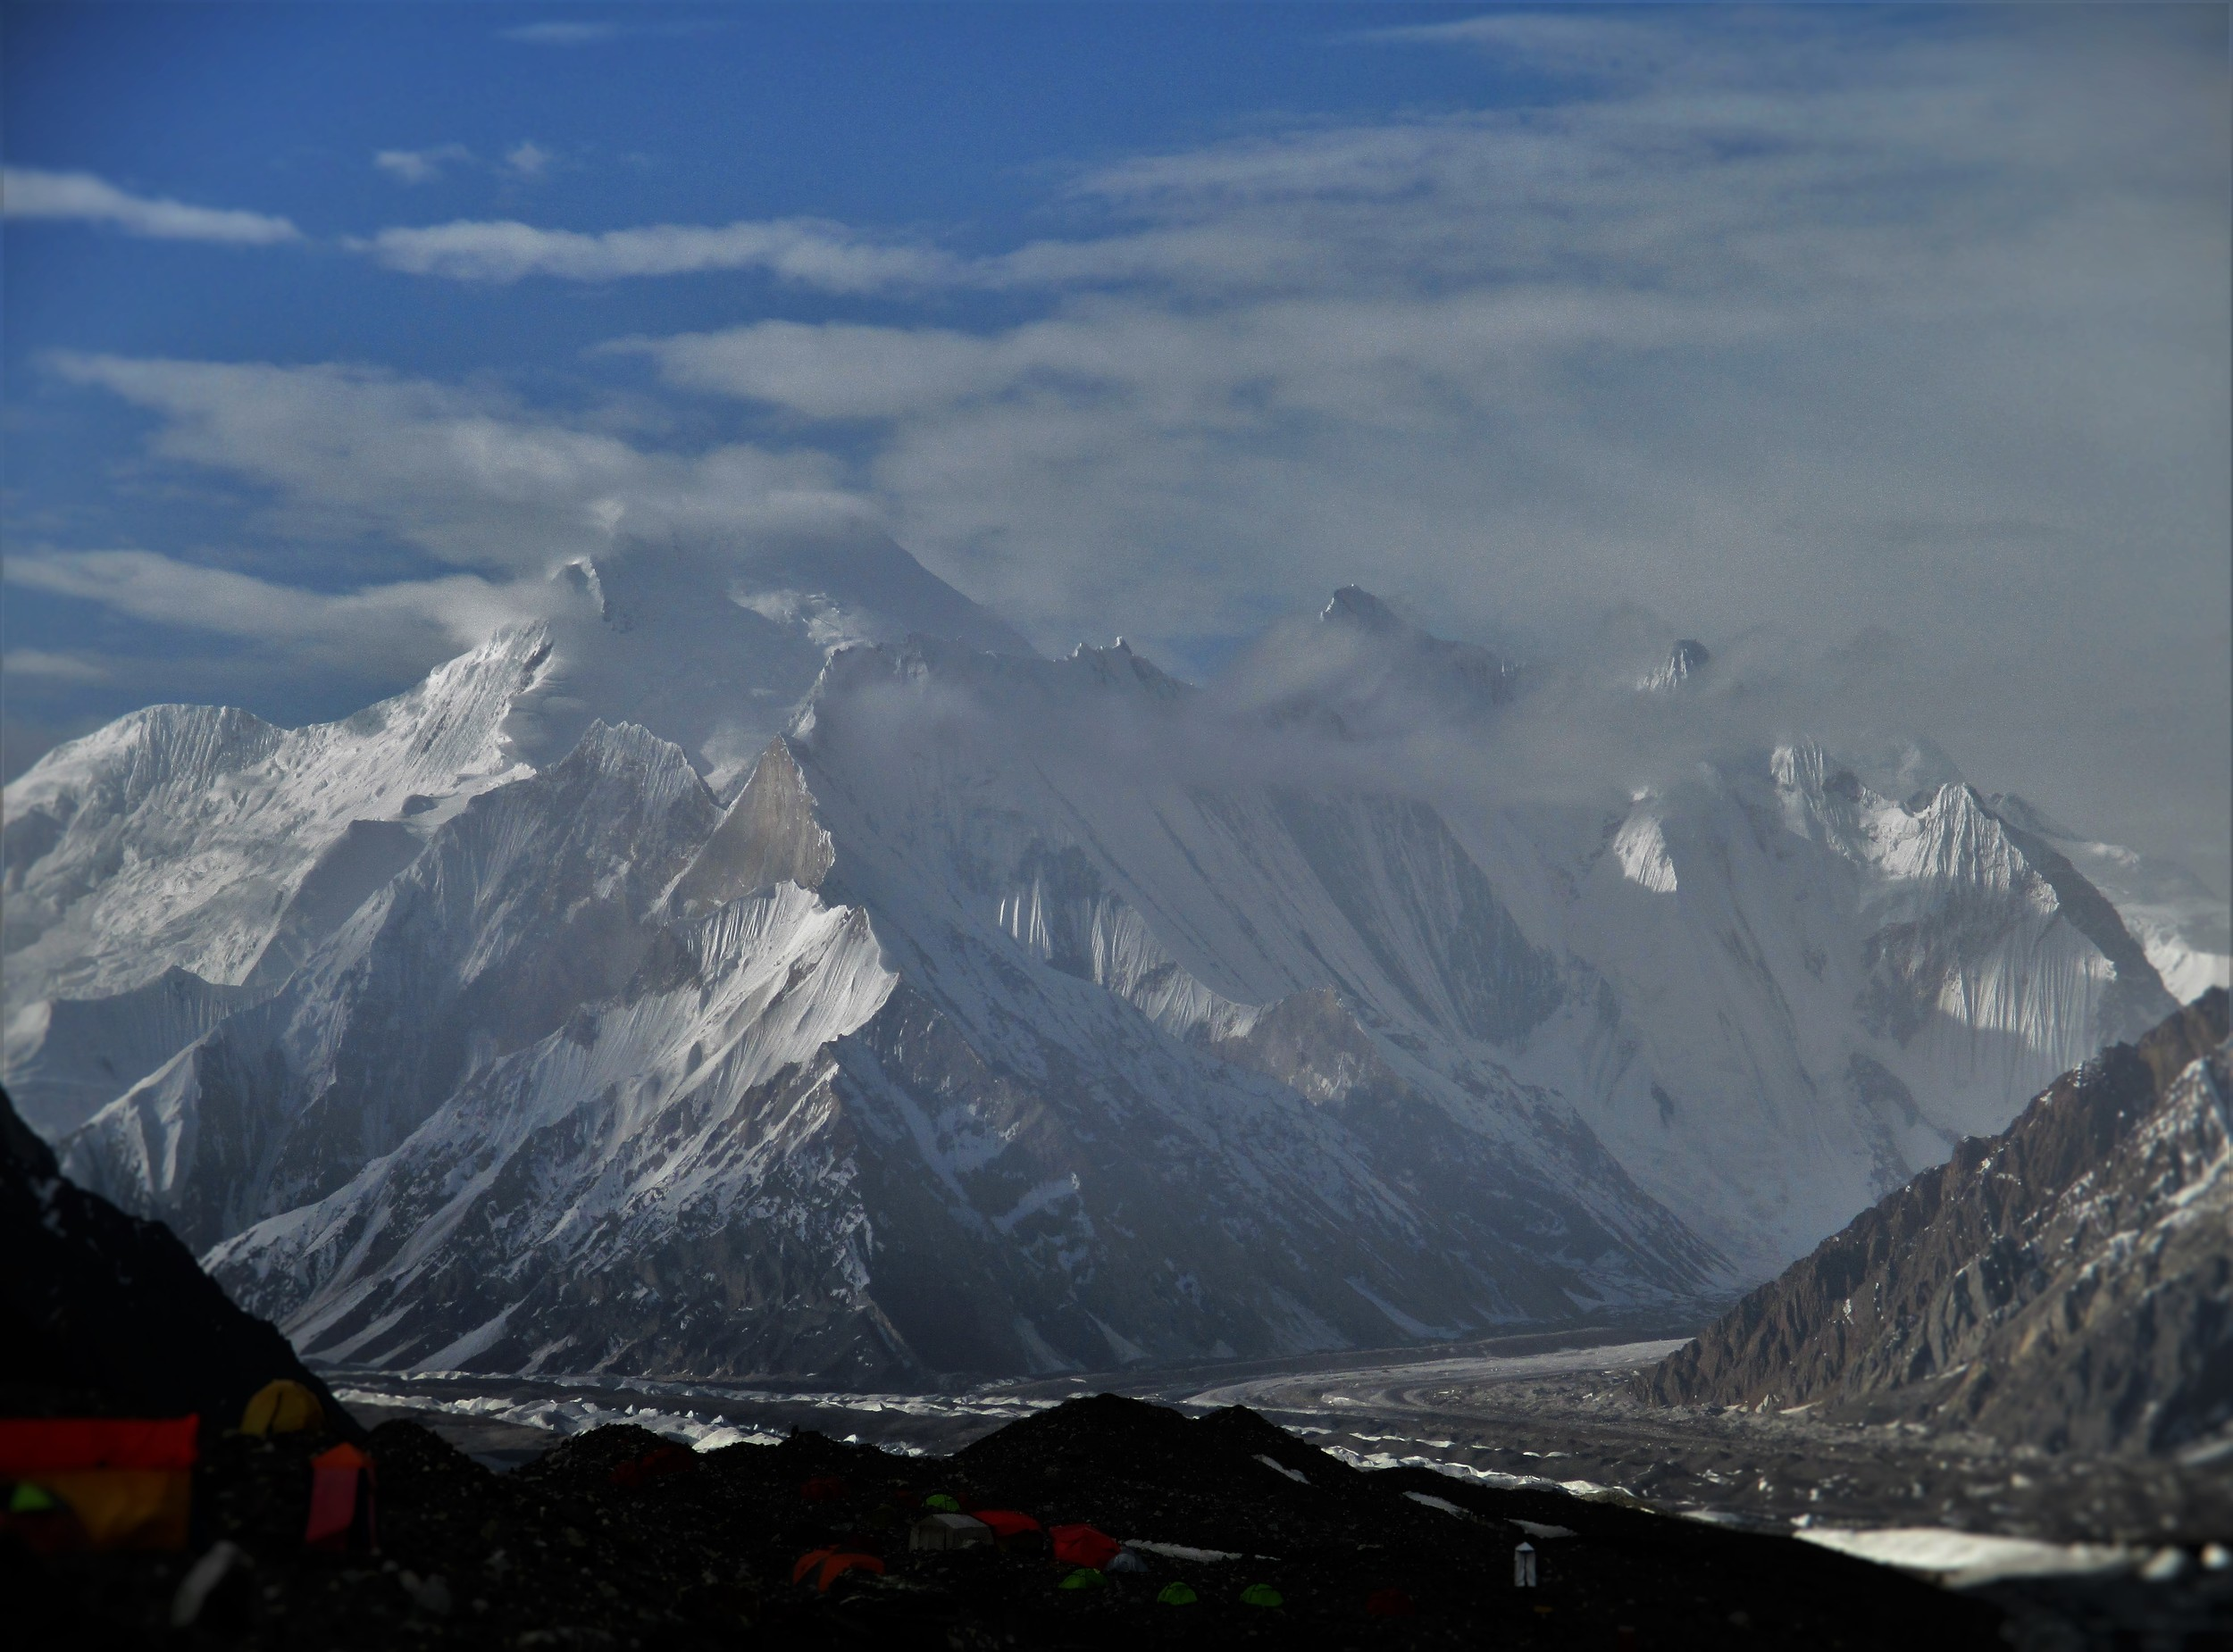 Chogolisa 7668 m, a beautiful snow mountain above Concordia. Photo taken from Broad Peak Base Camp.